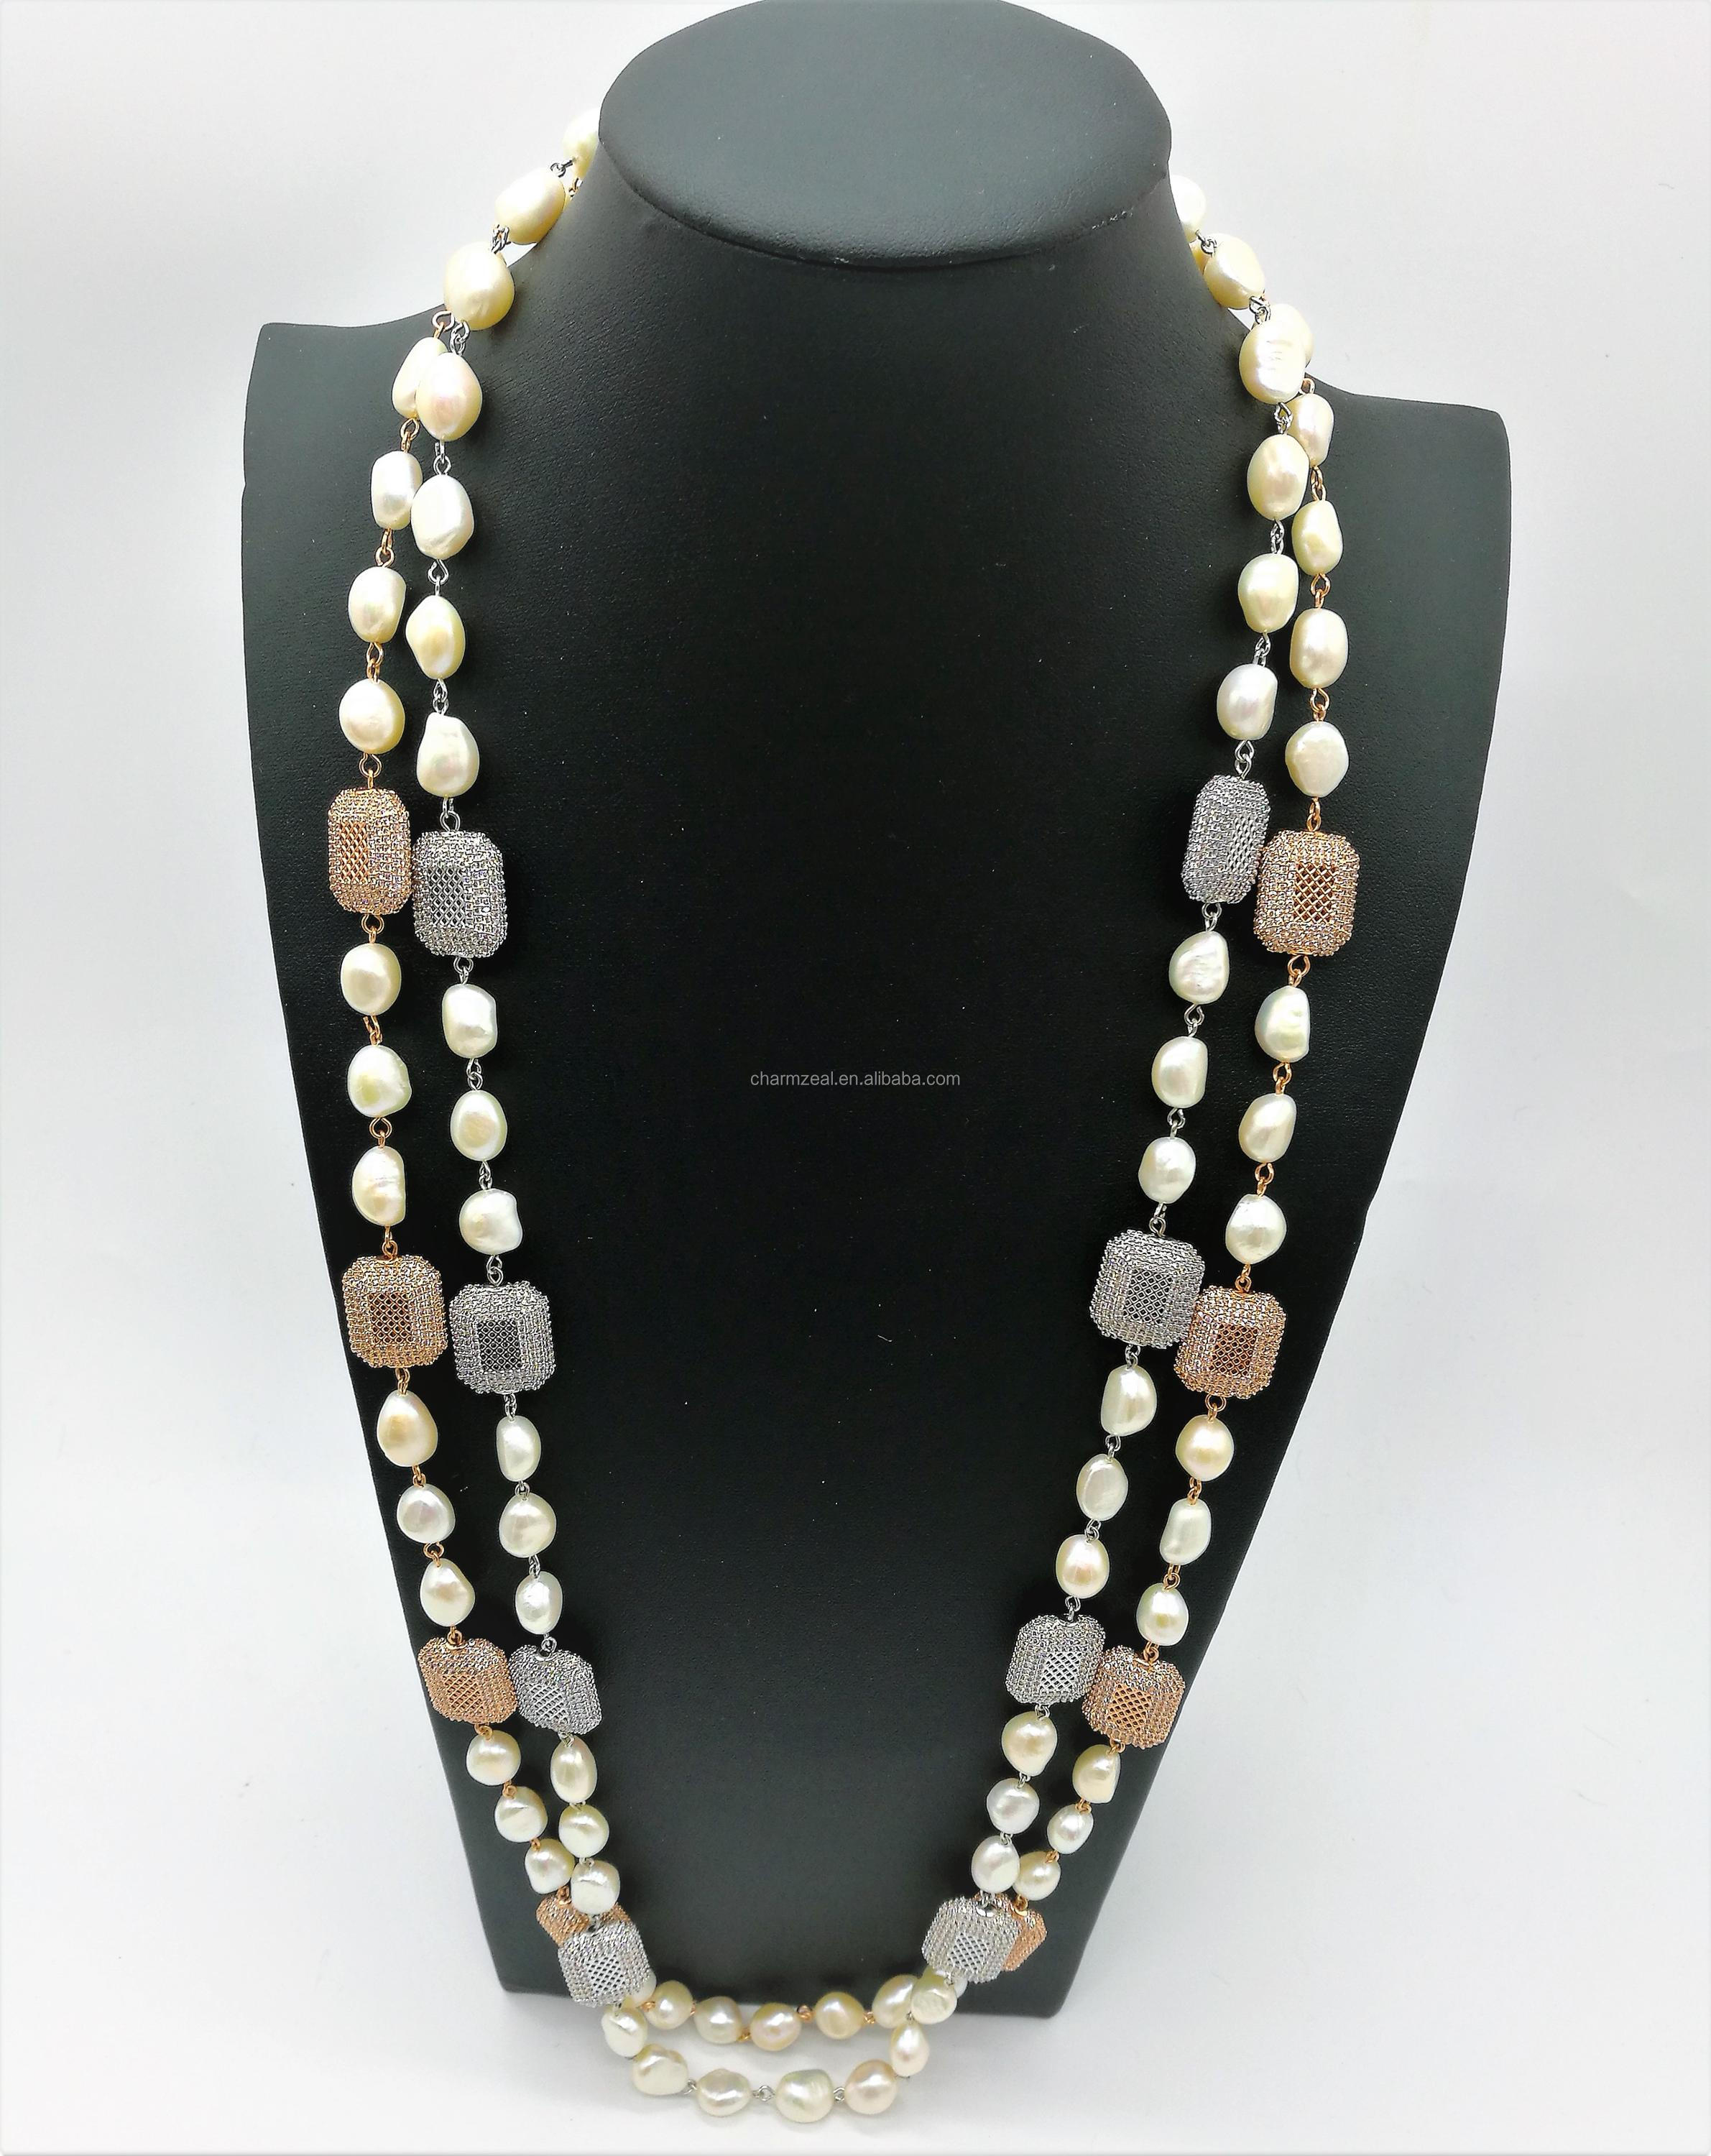 beads chunky necklaces jewellery fashion womens bubblegum myshoplah costume jewelry from